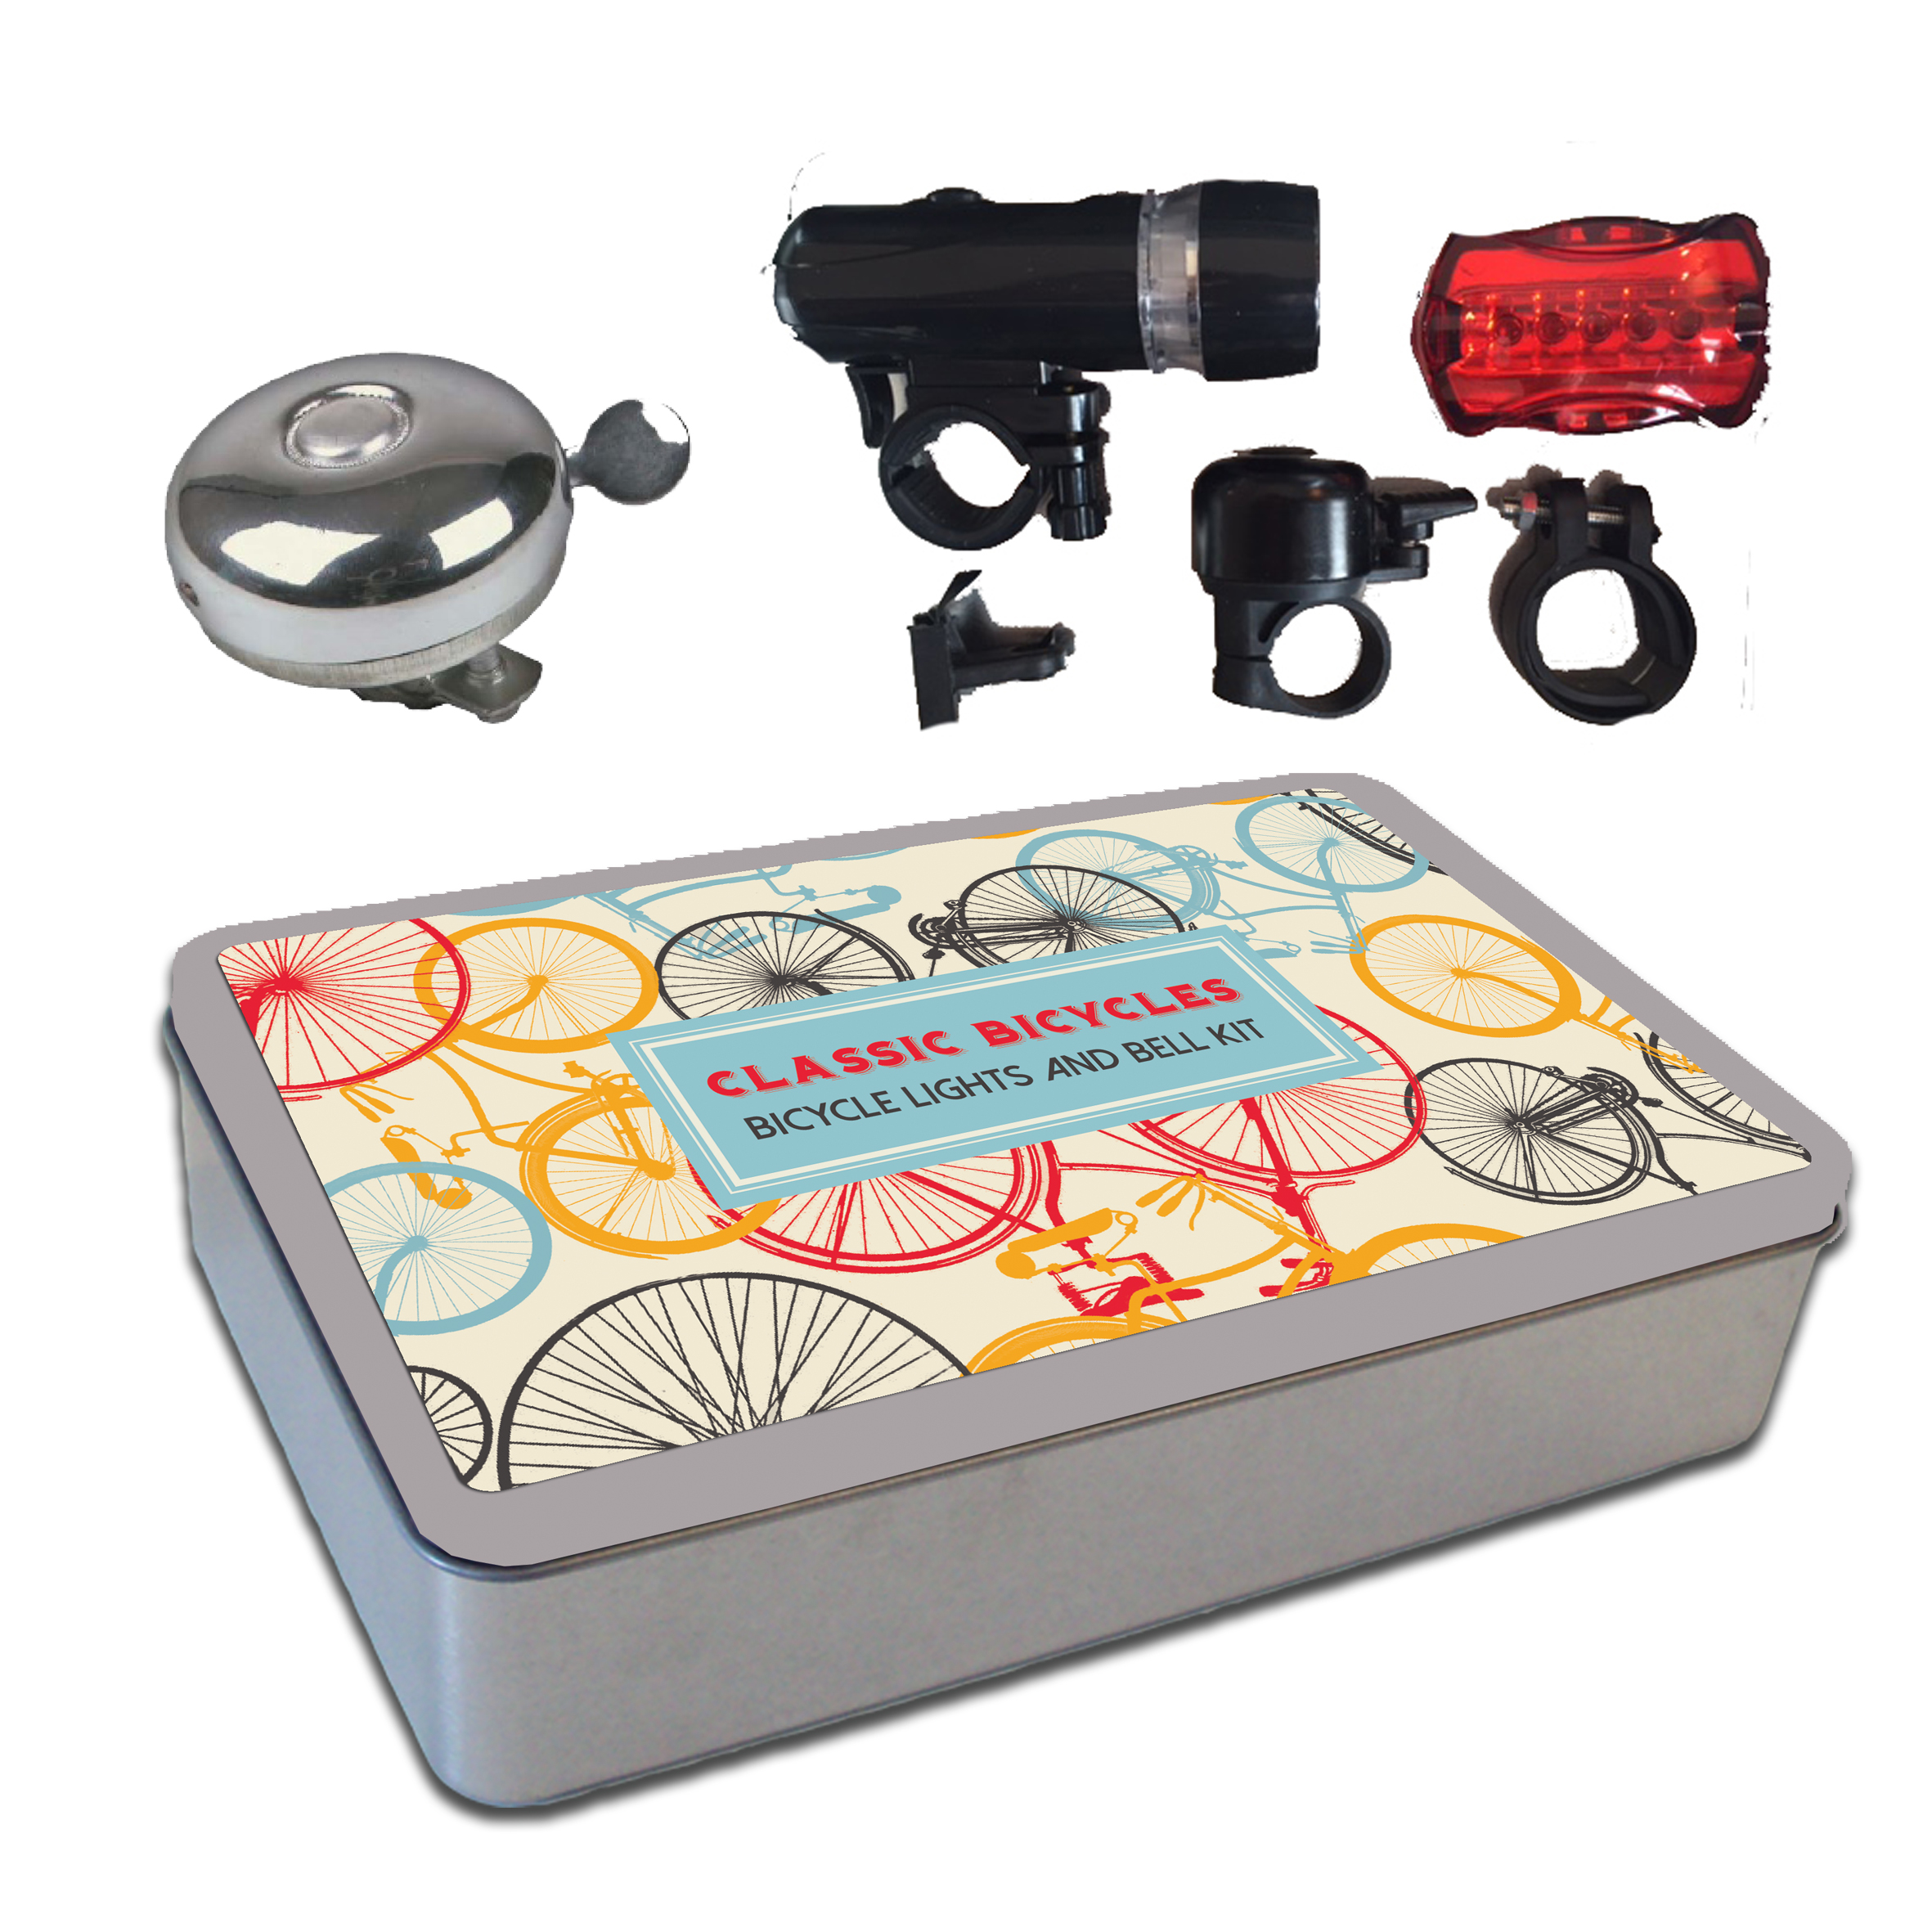 Bike lights & bell kit in a tin